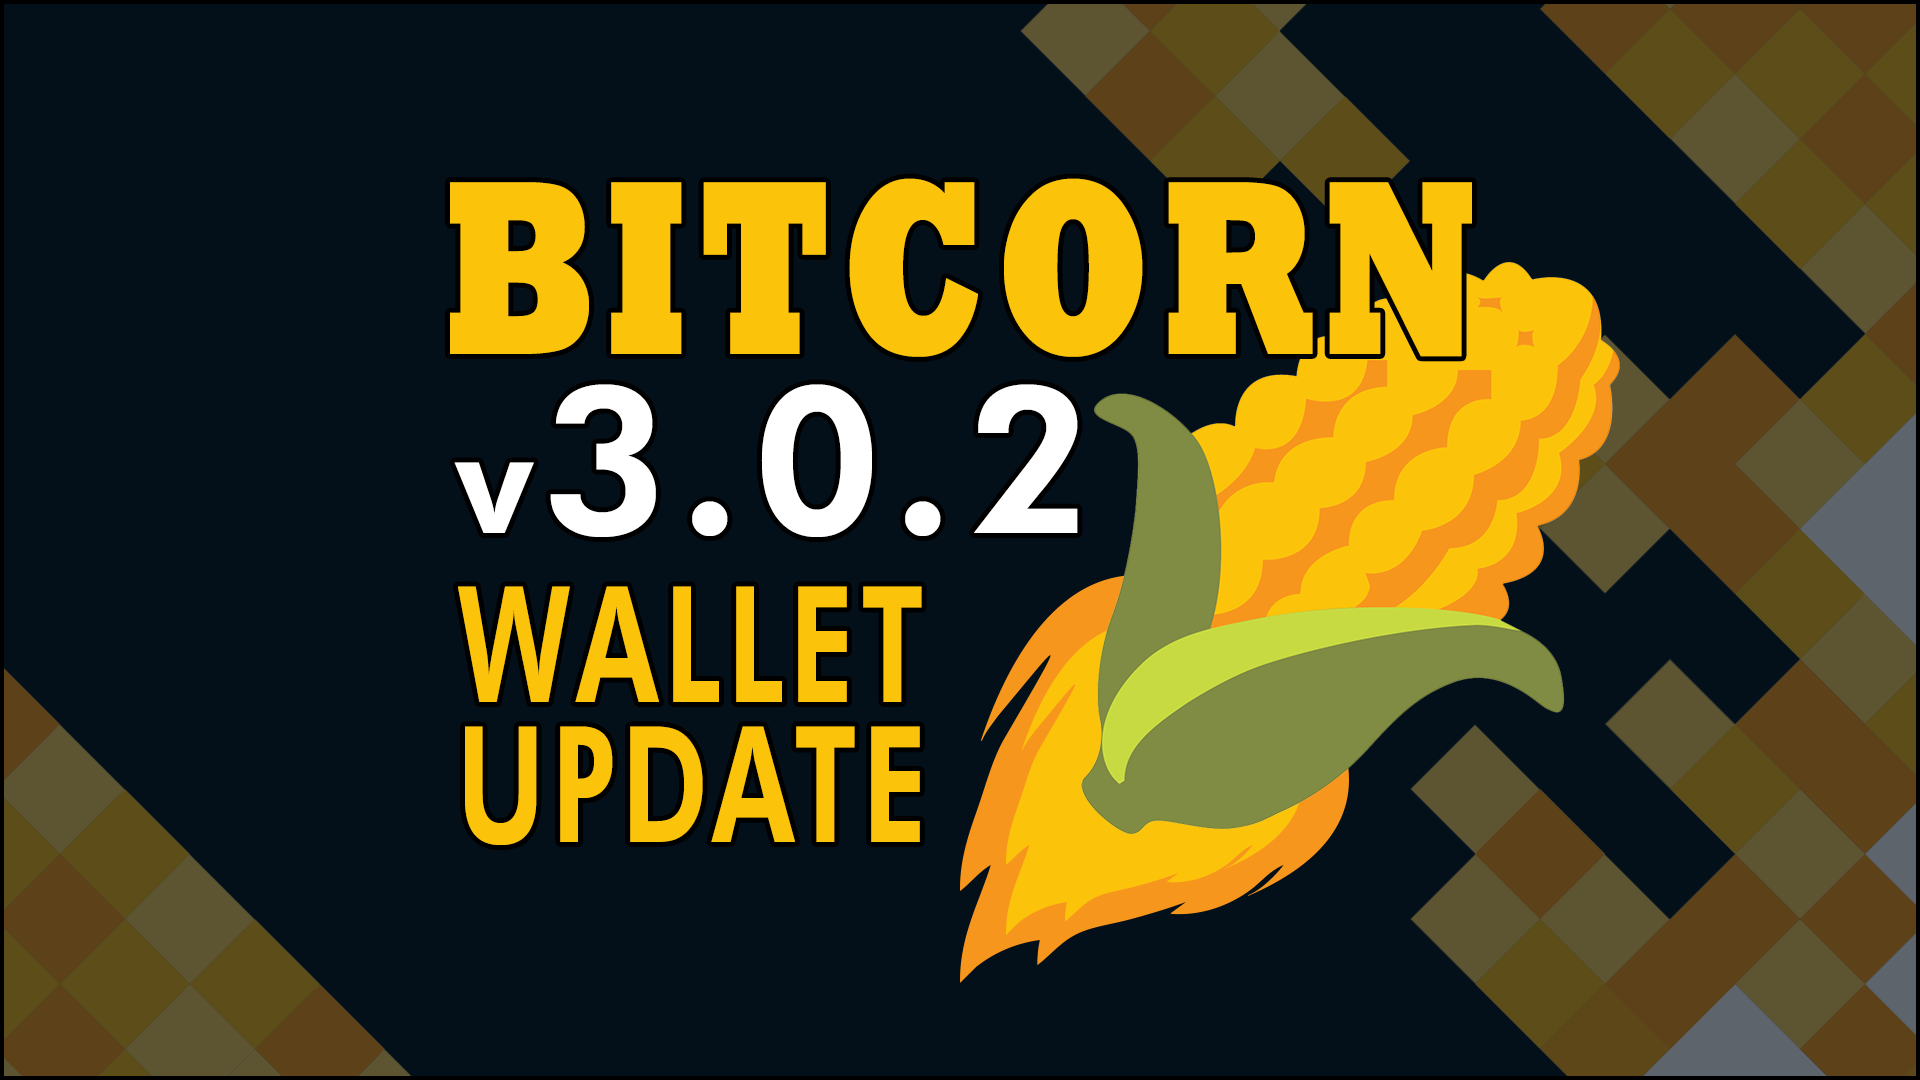 BITCORN Wallet Update version 3.0.2